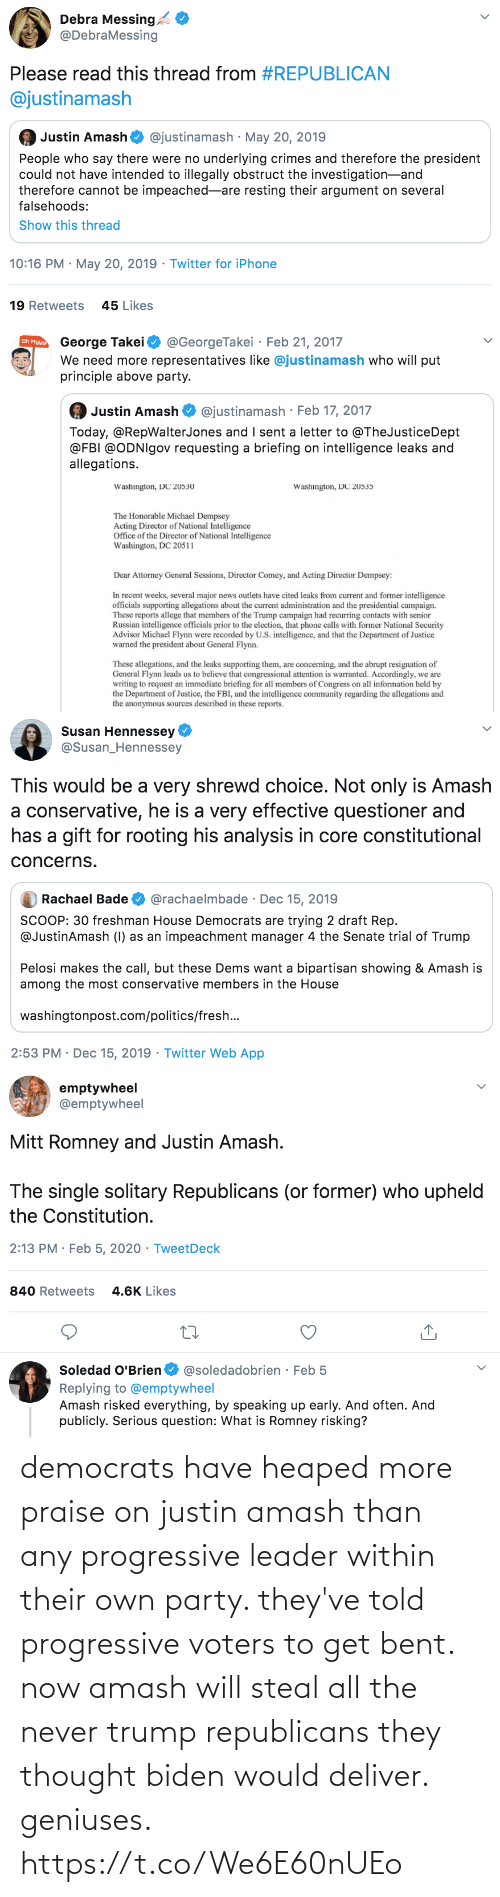 deliver: democrats have heaped more praise on justin amash than any progressive leader within their own party. they've told progressive voters to get bent. now amash will steal all the never trump republicans they thought biden would deliver. geniuses. https://t.co/We6E60nUEo